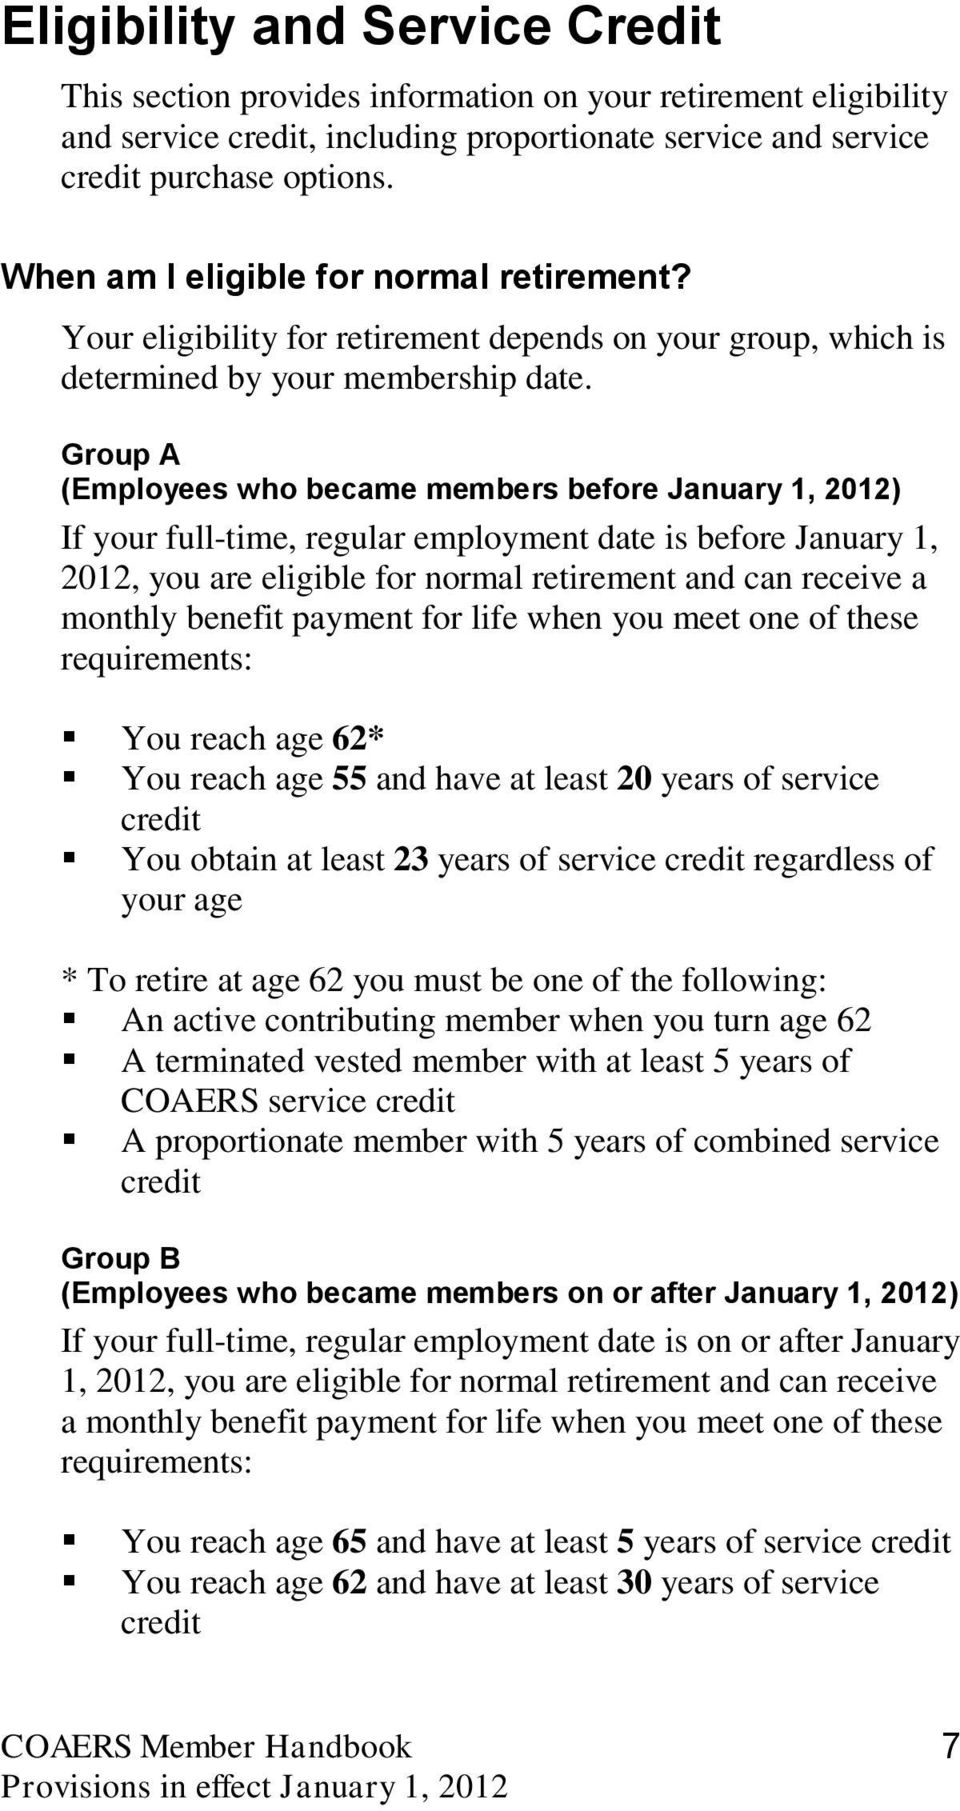 Group A (Employees who became members before January 1, 2012) If your full-time, regular employment date is before January 1, 2012, you are eligible for normal retirement and can receive a monthly